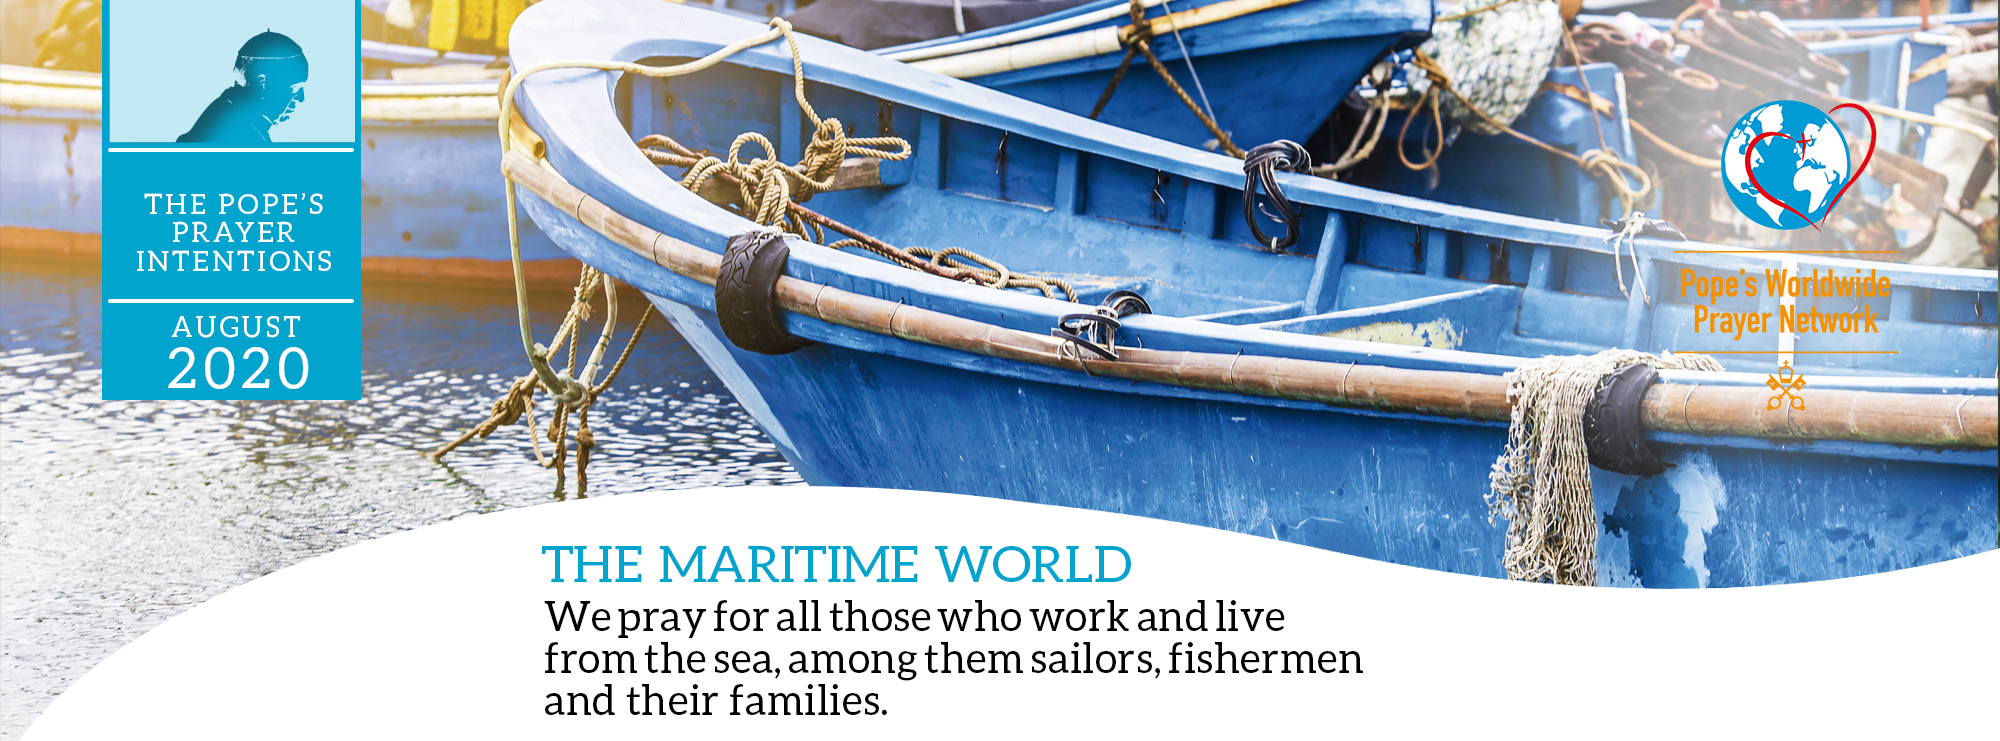 the maritime world pope's prayer intentions